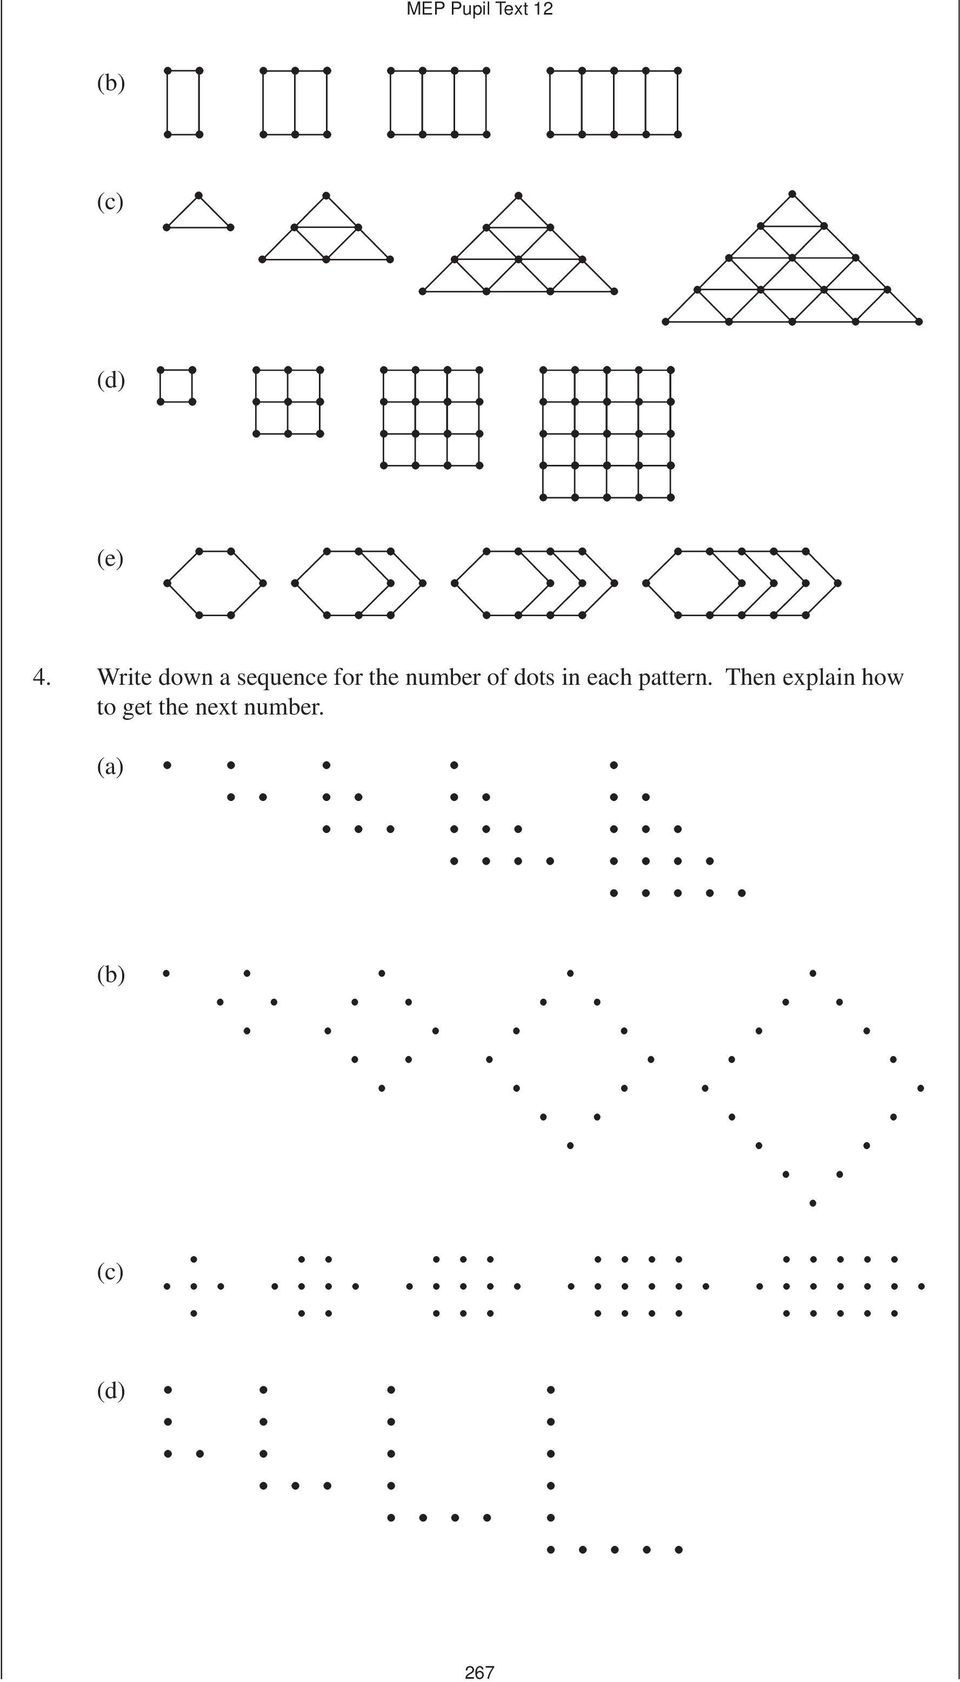 number of dots in each pattern.